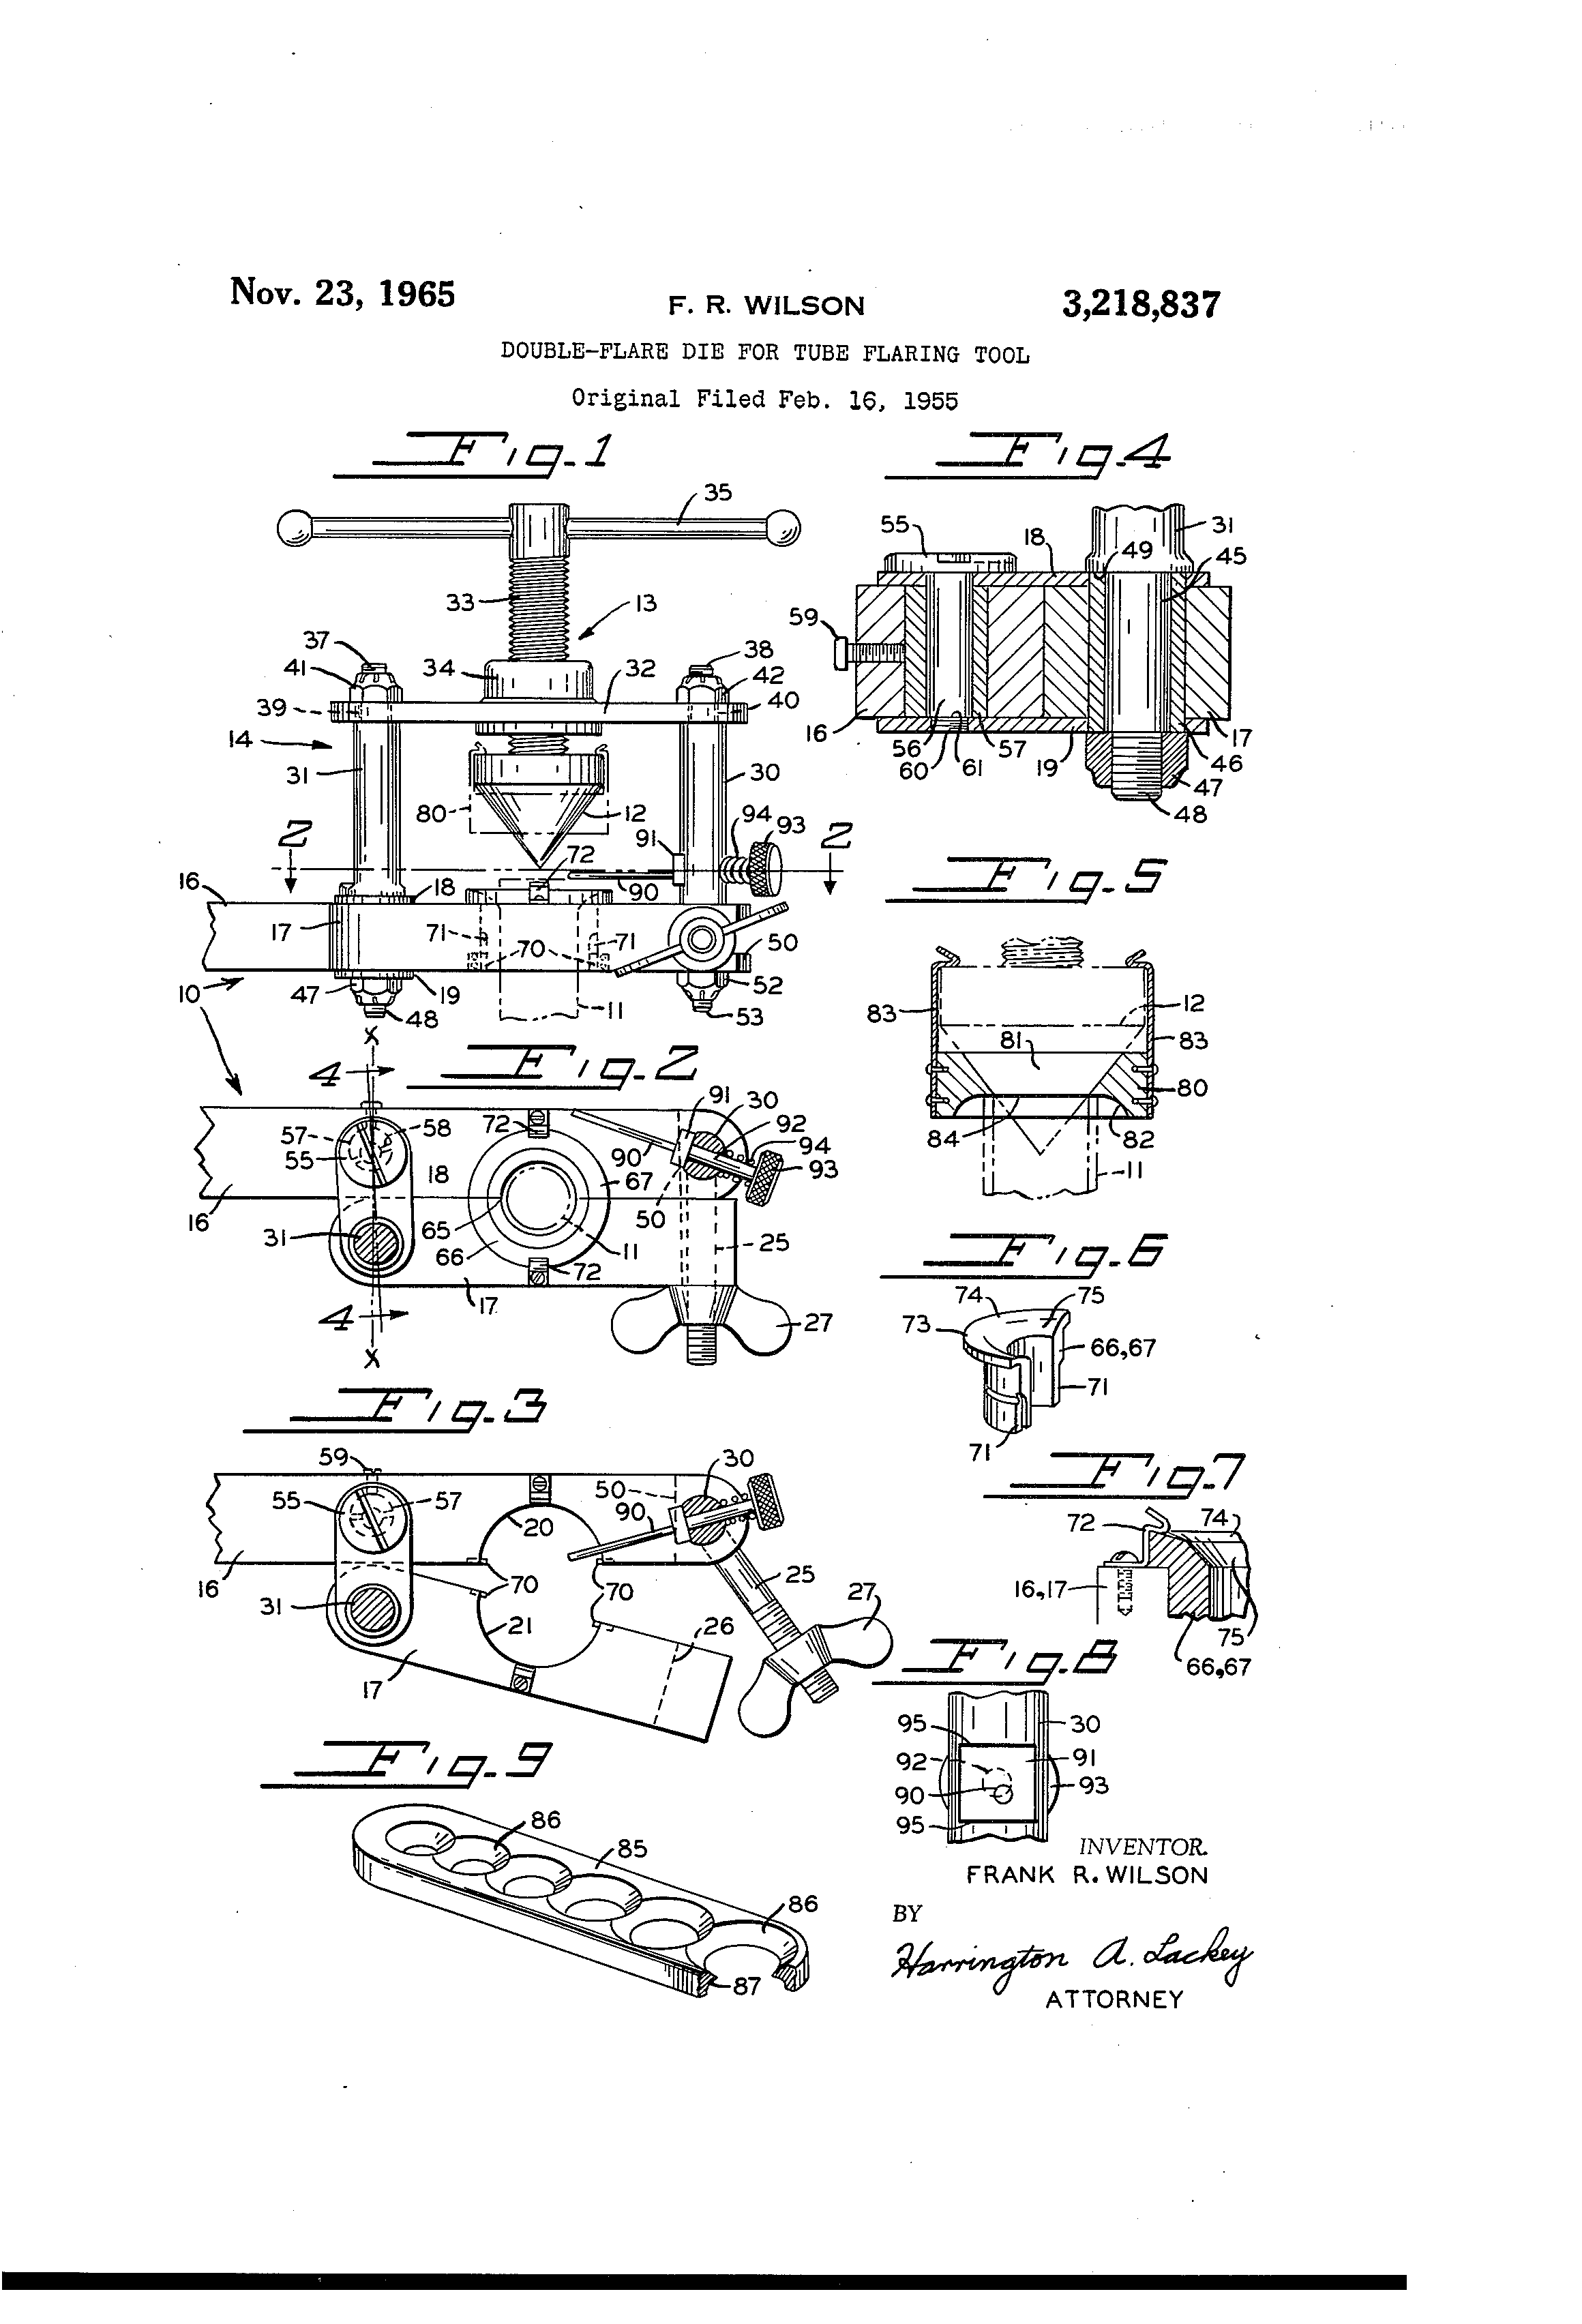 Volkswagen Beetle Convertible Wiring Diagram